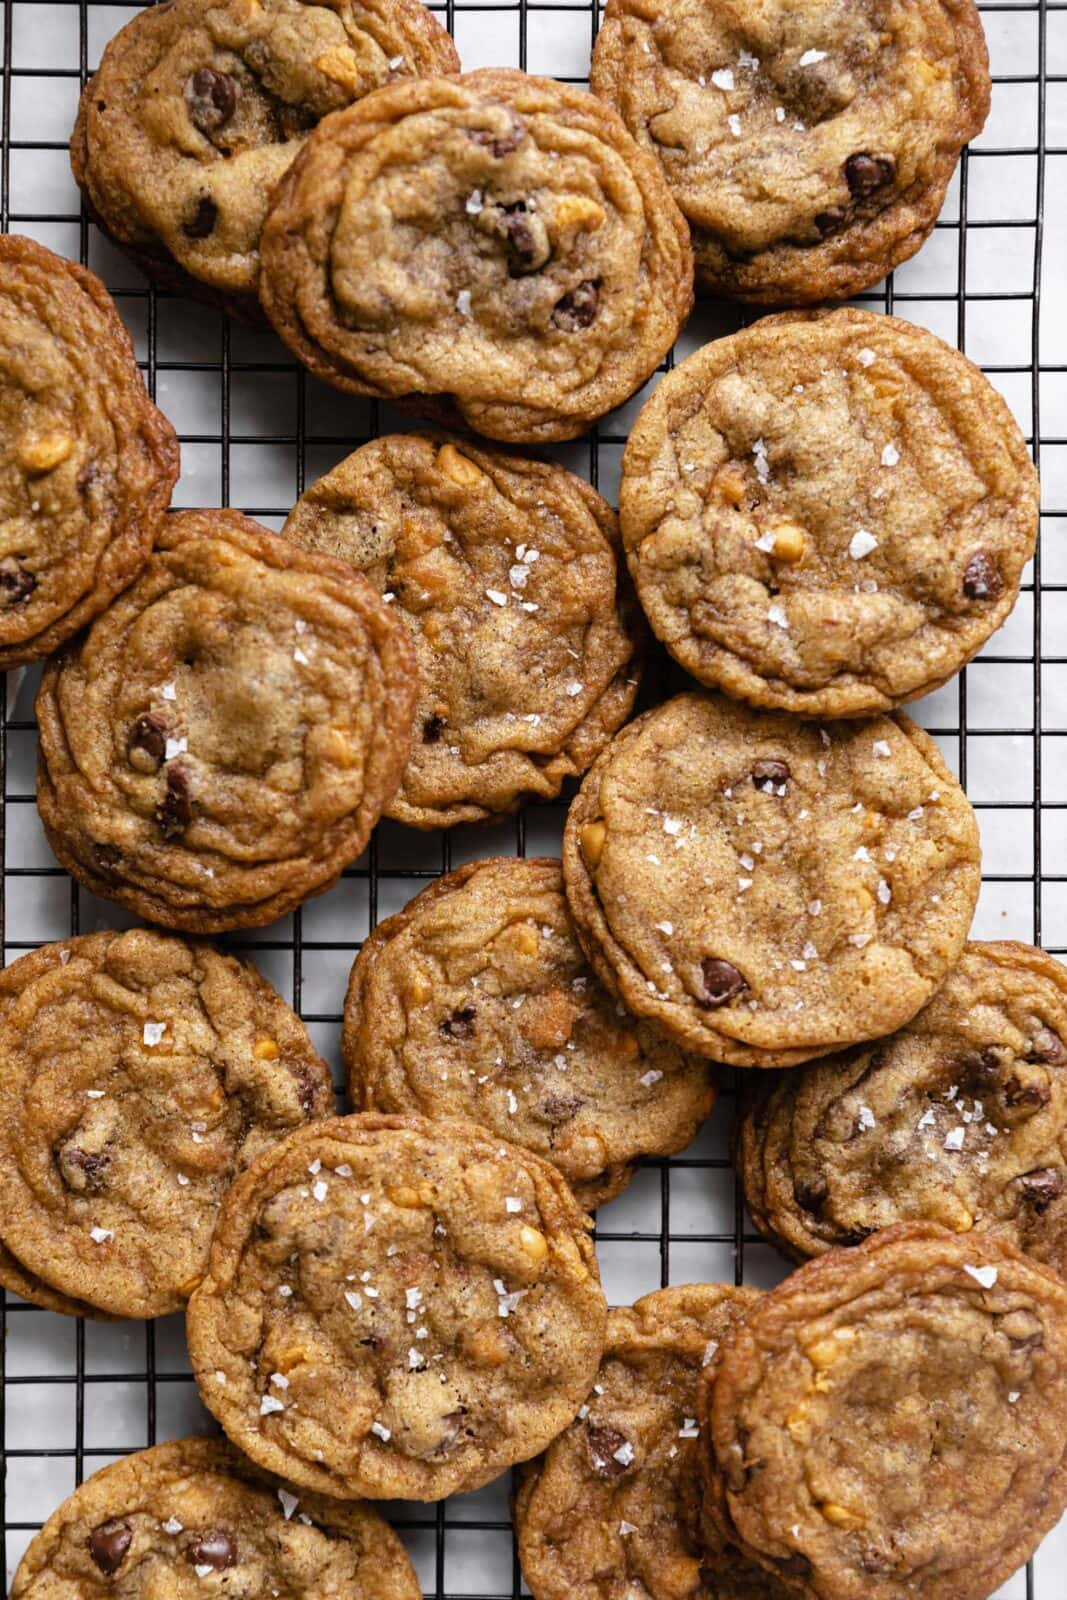 butterscotch chocolate chip cookies on a cookie sheet